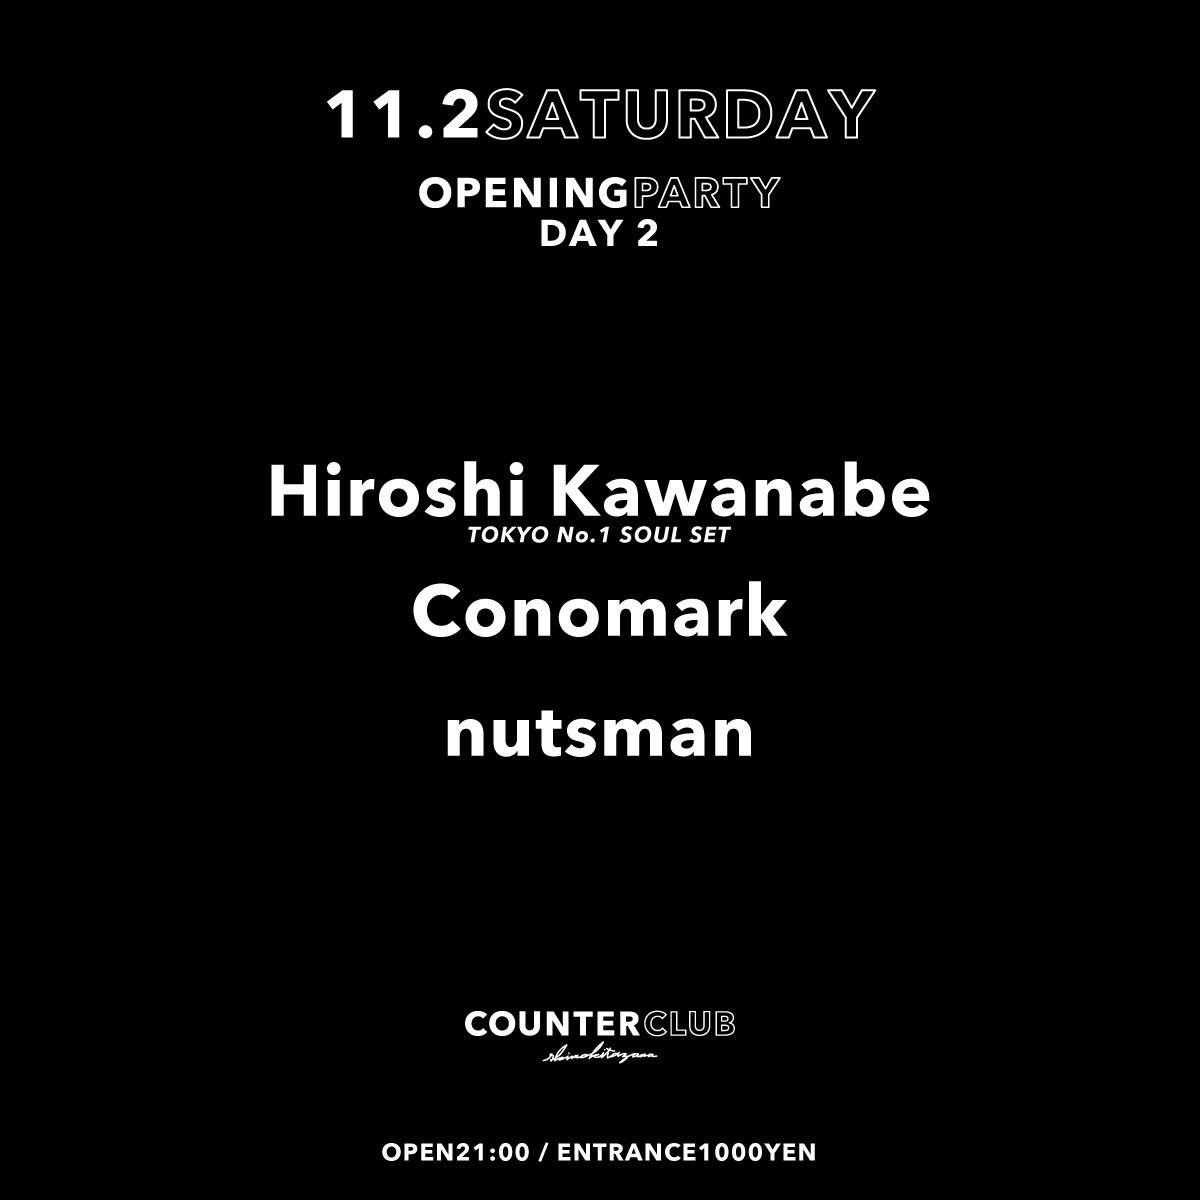 COUNTER CLUB Opening Party Day2